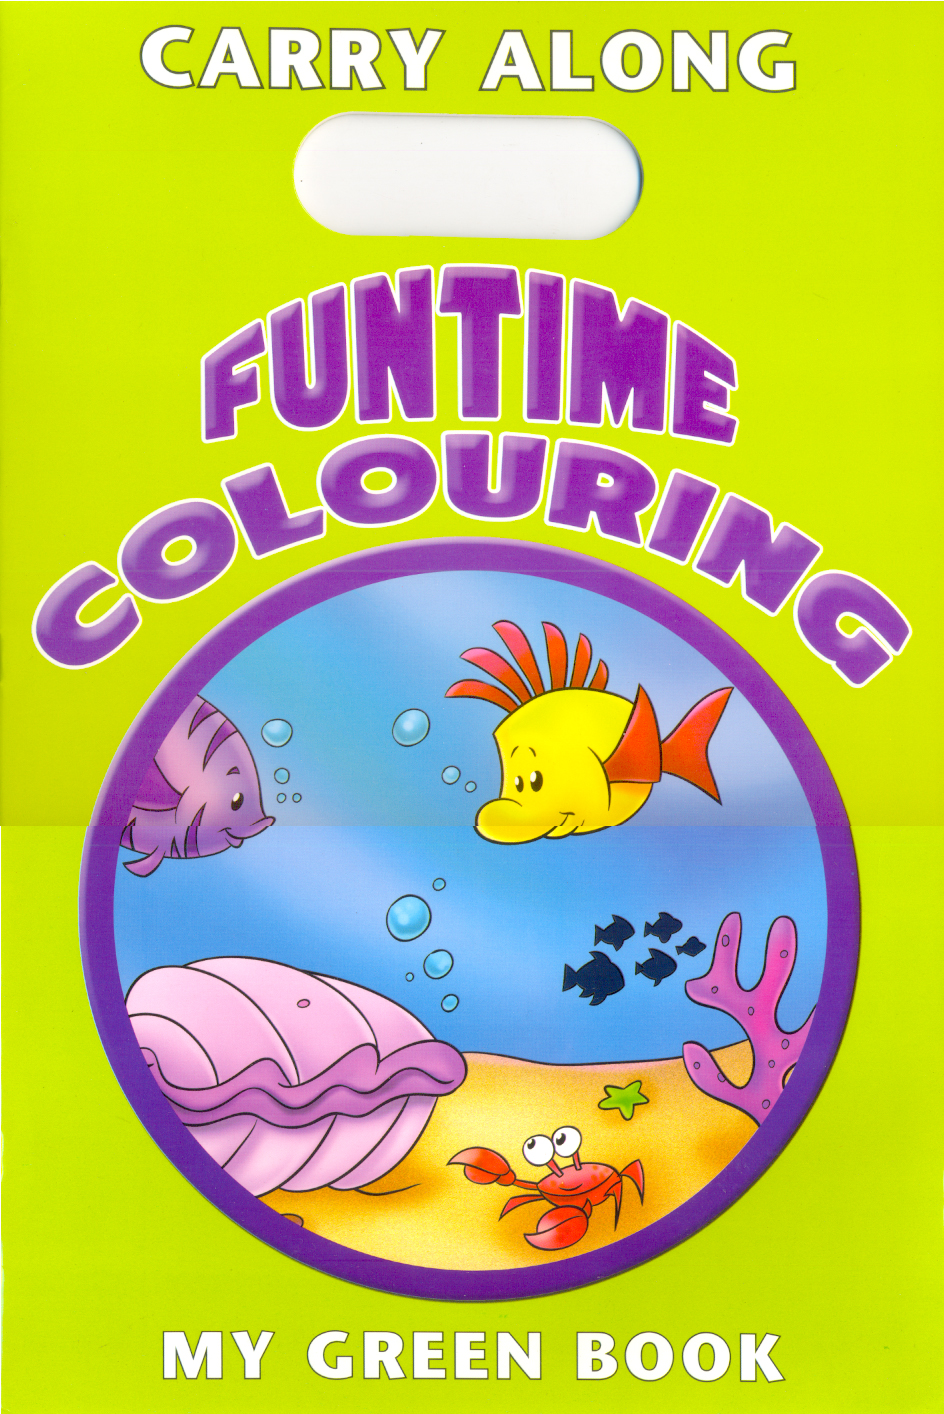 Carry Along Funtime Colouring - My Green Book